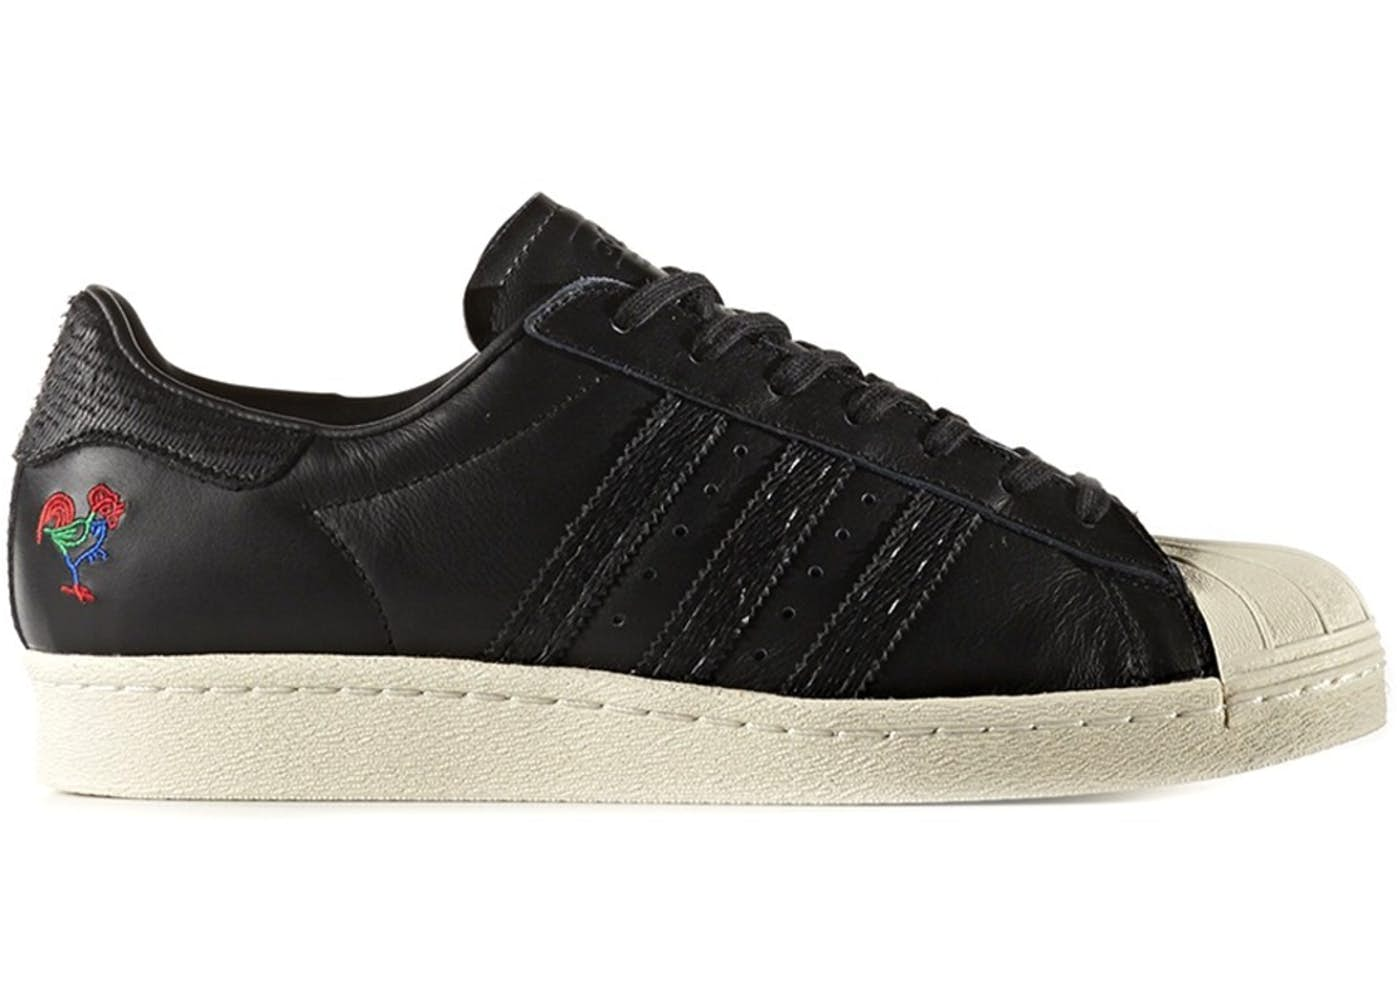 adidas Superstar 80s Women's Black Casual Lace Up Shoe Shiekh